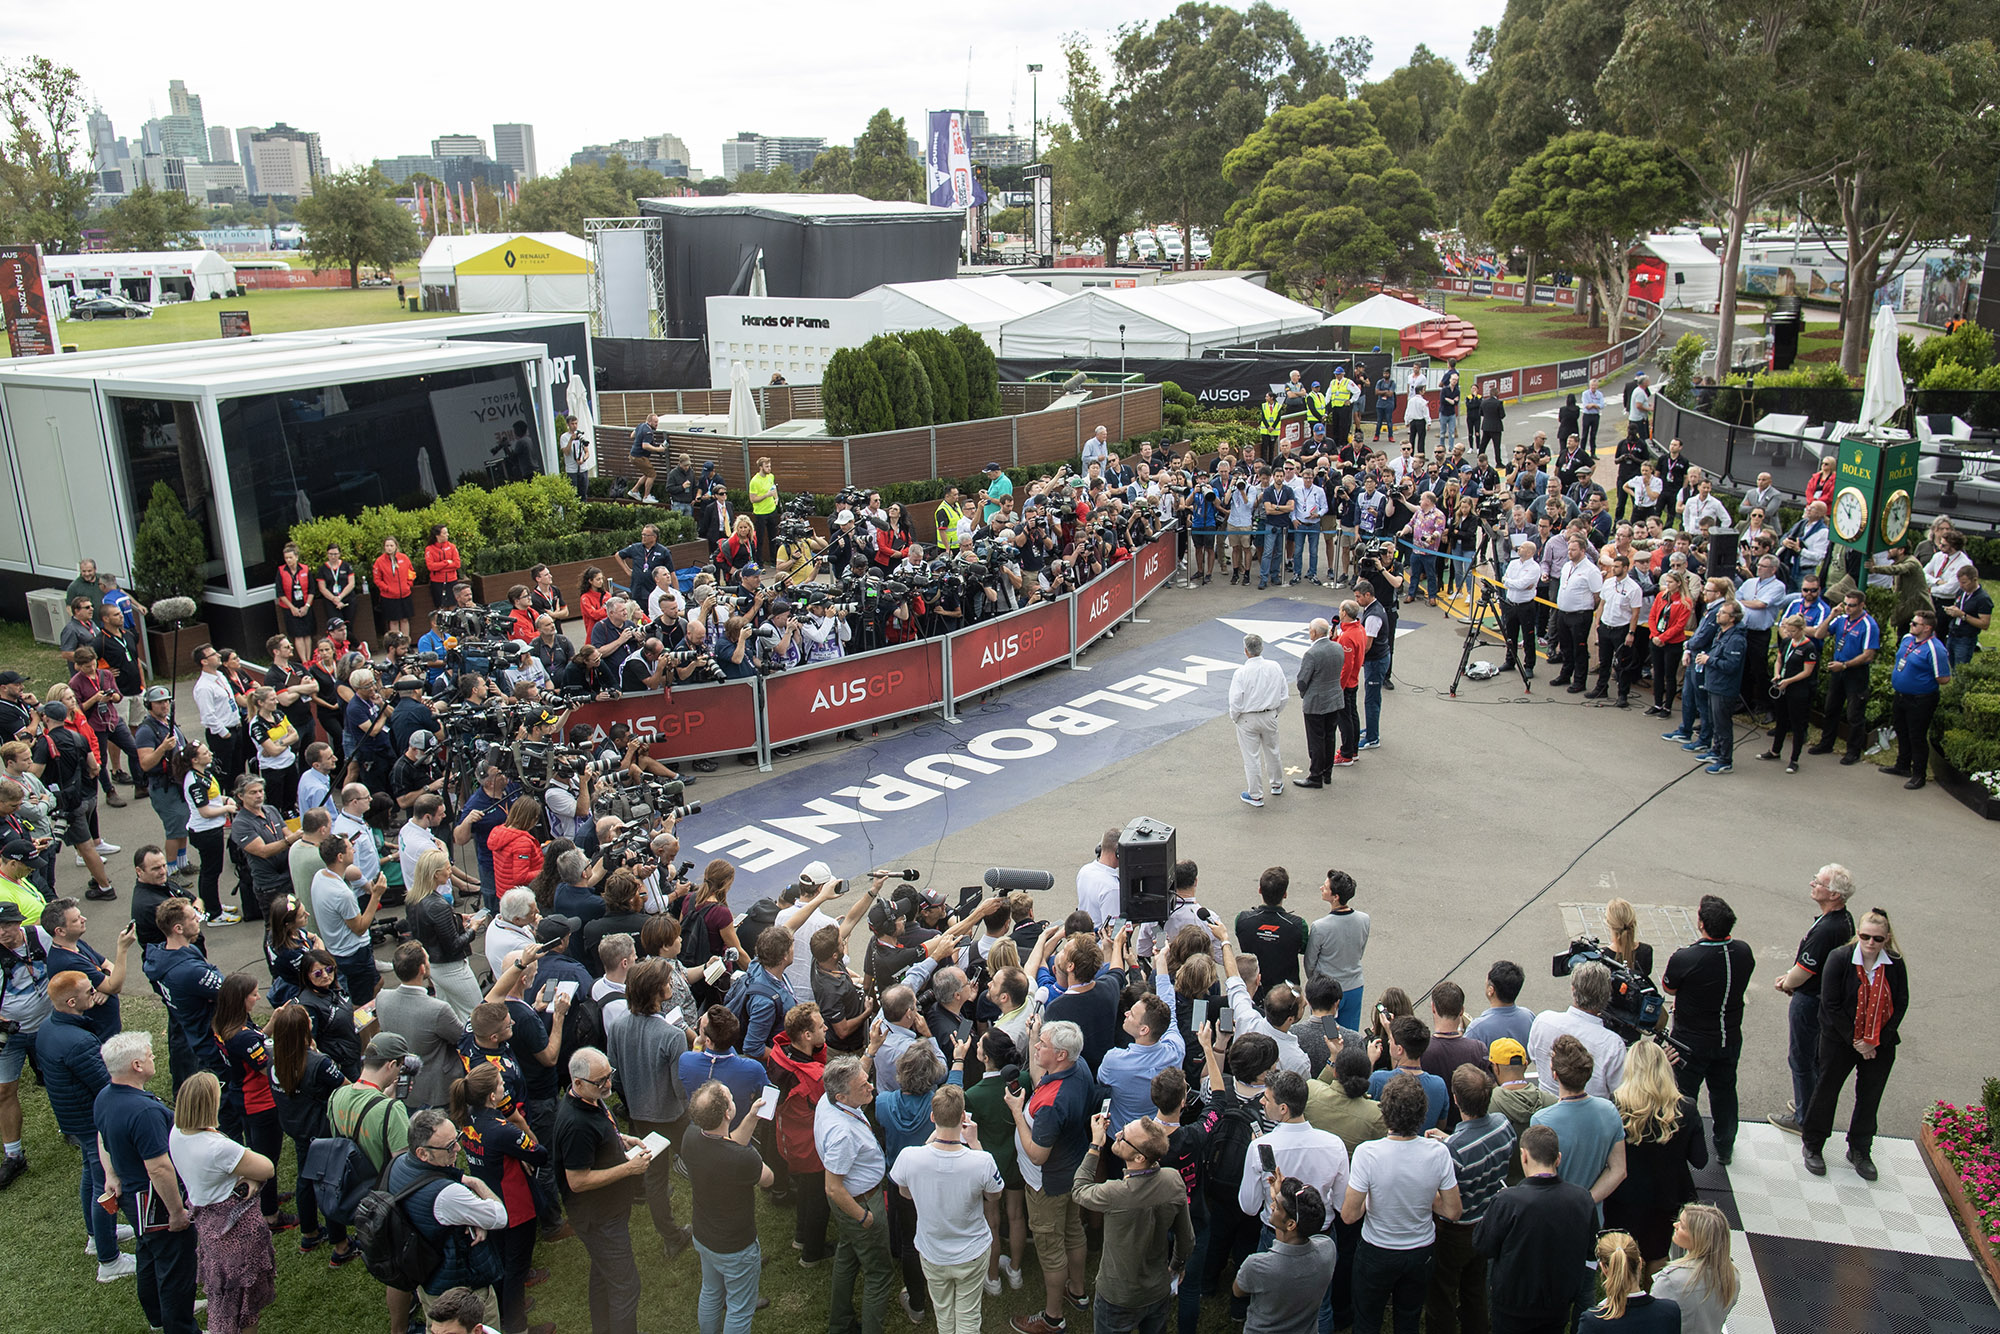 Scores of journalists listen to an F1 press conference after cancellation of the 2020 Australian Grand Prix